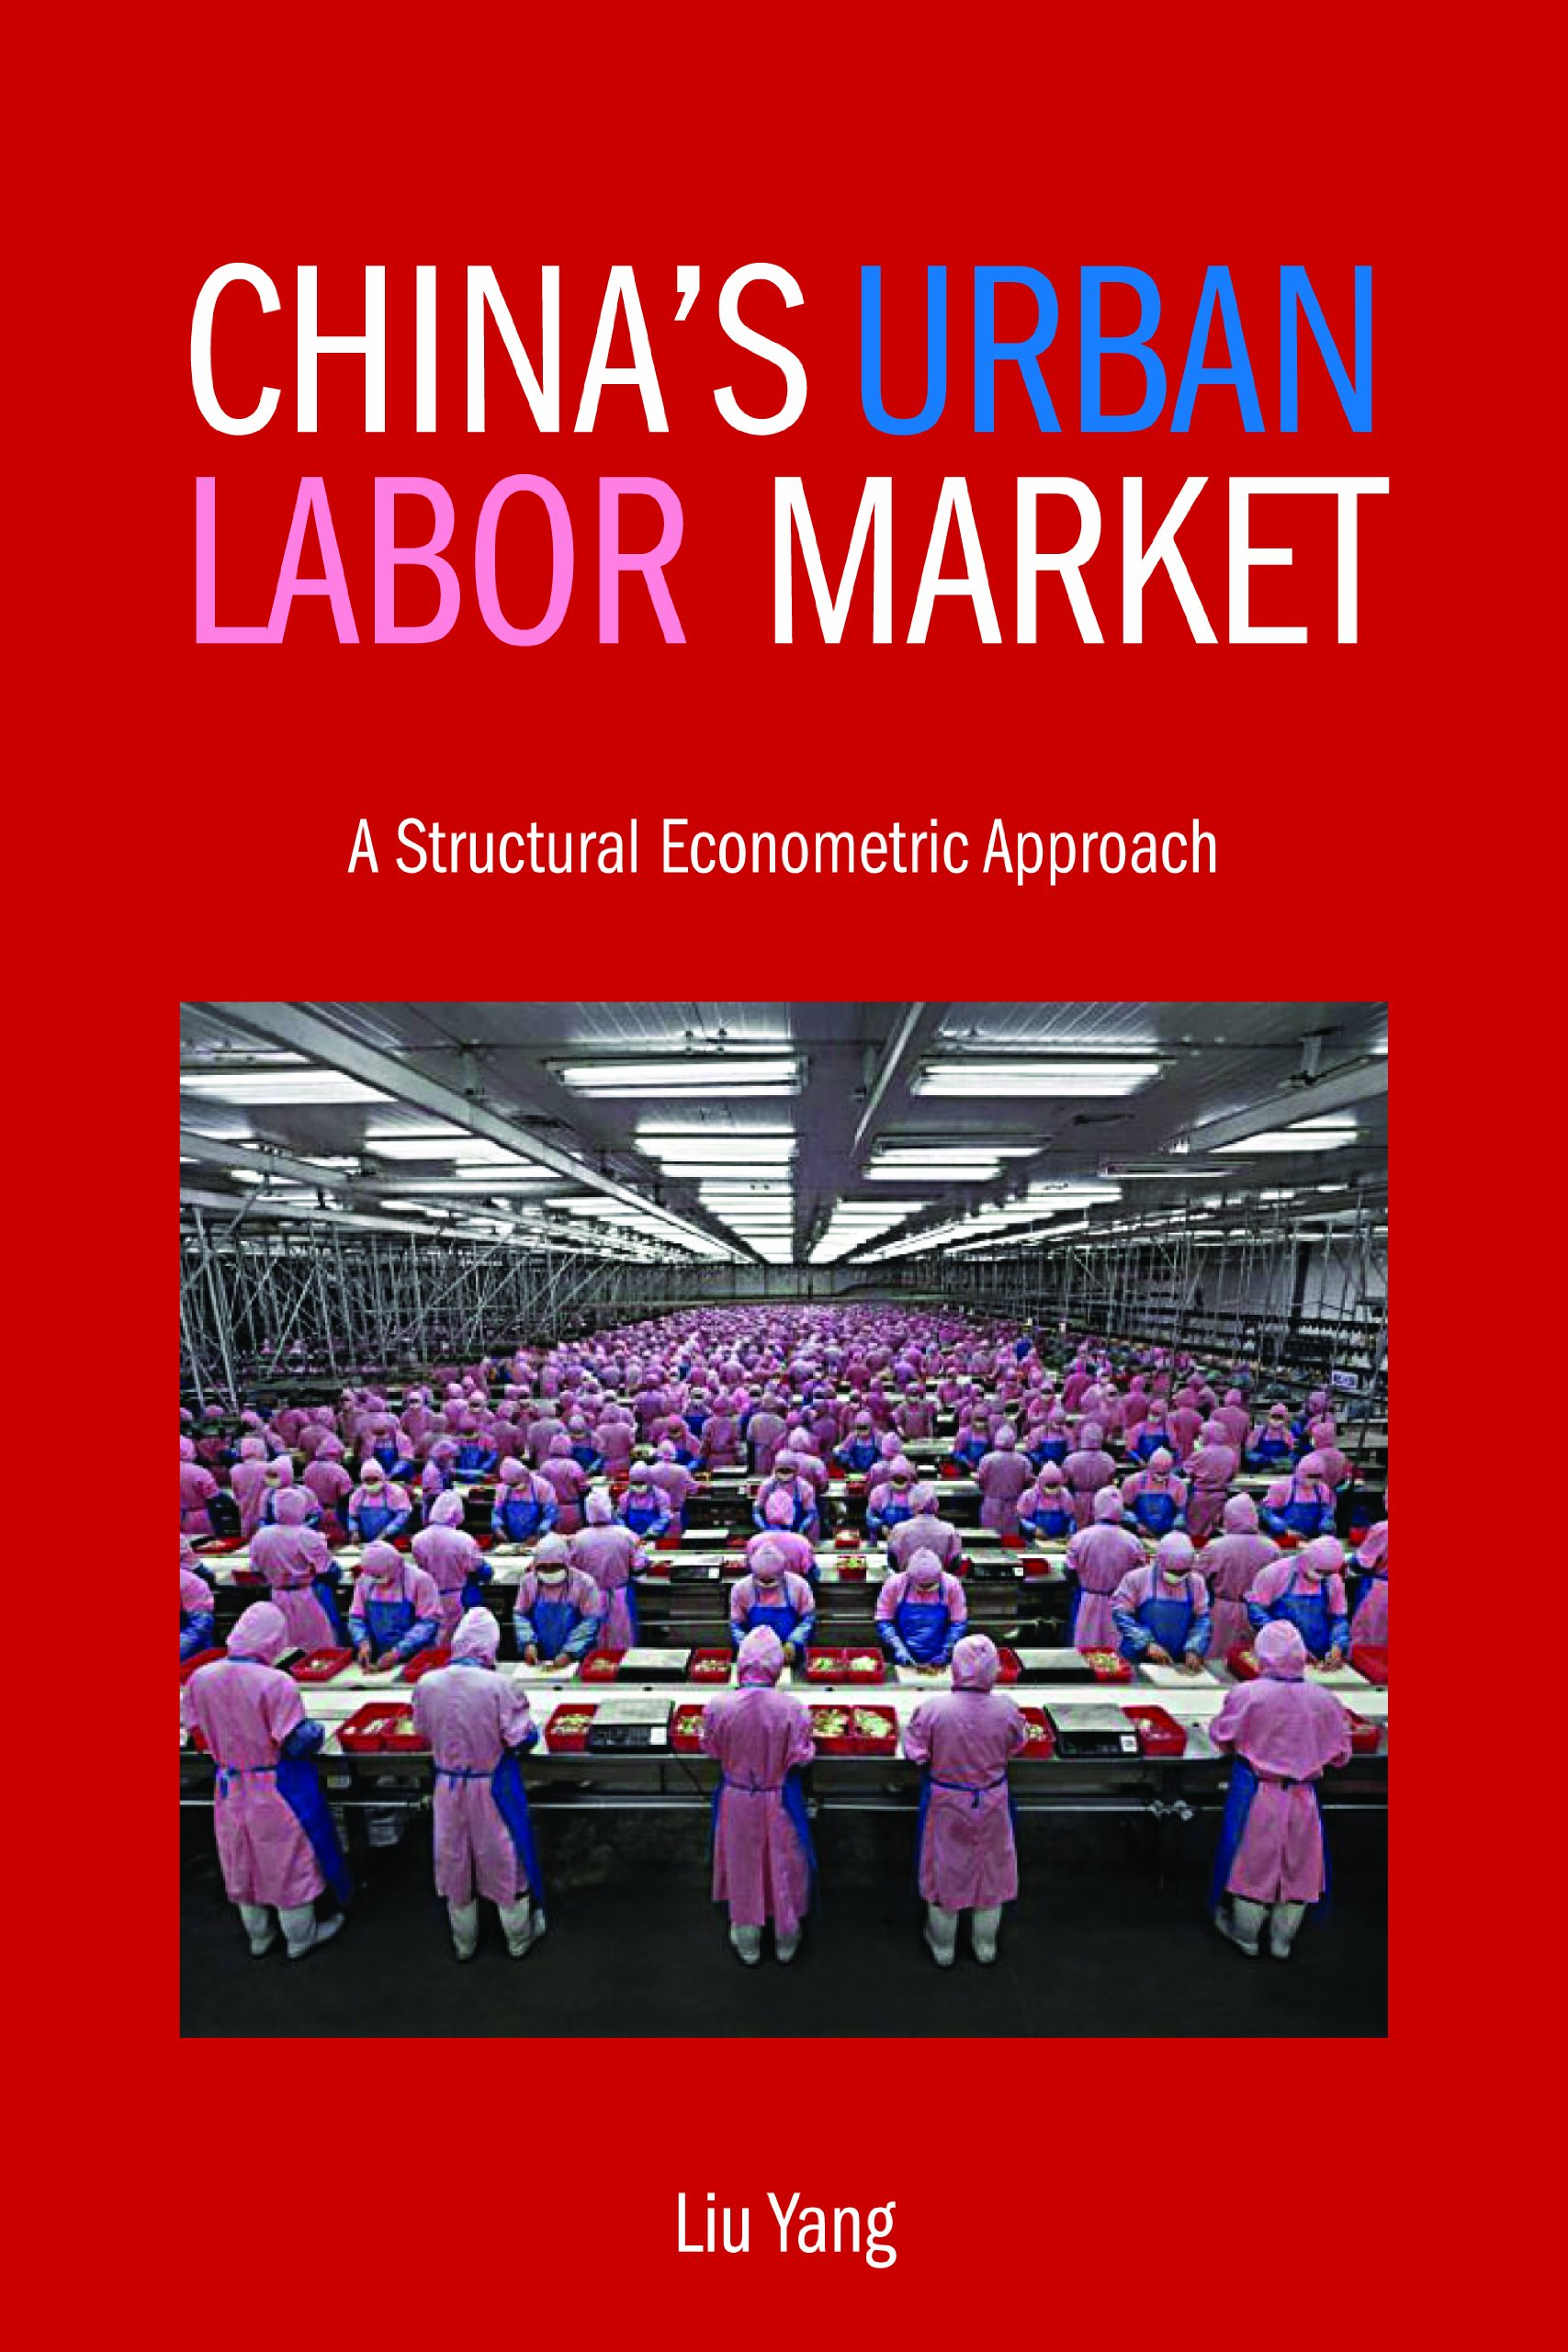 China's Urban Labor Market: A Structural Econometric Approach pdf